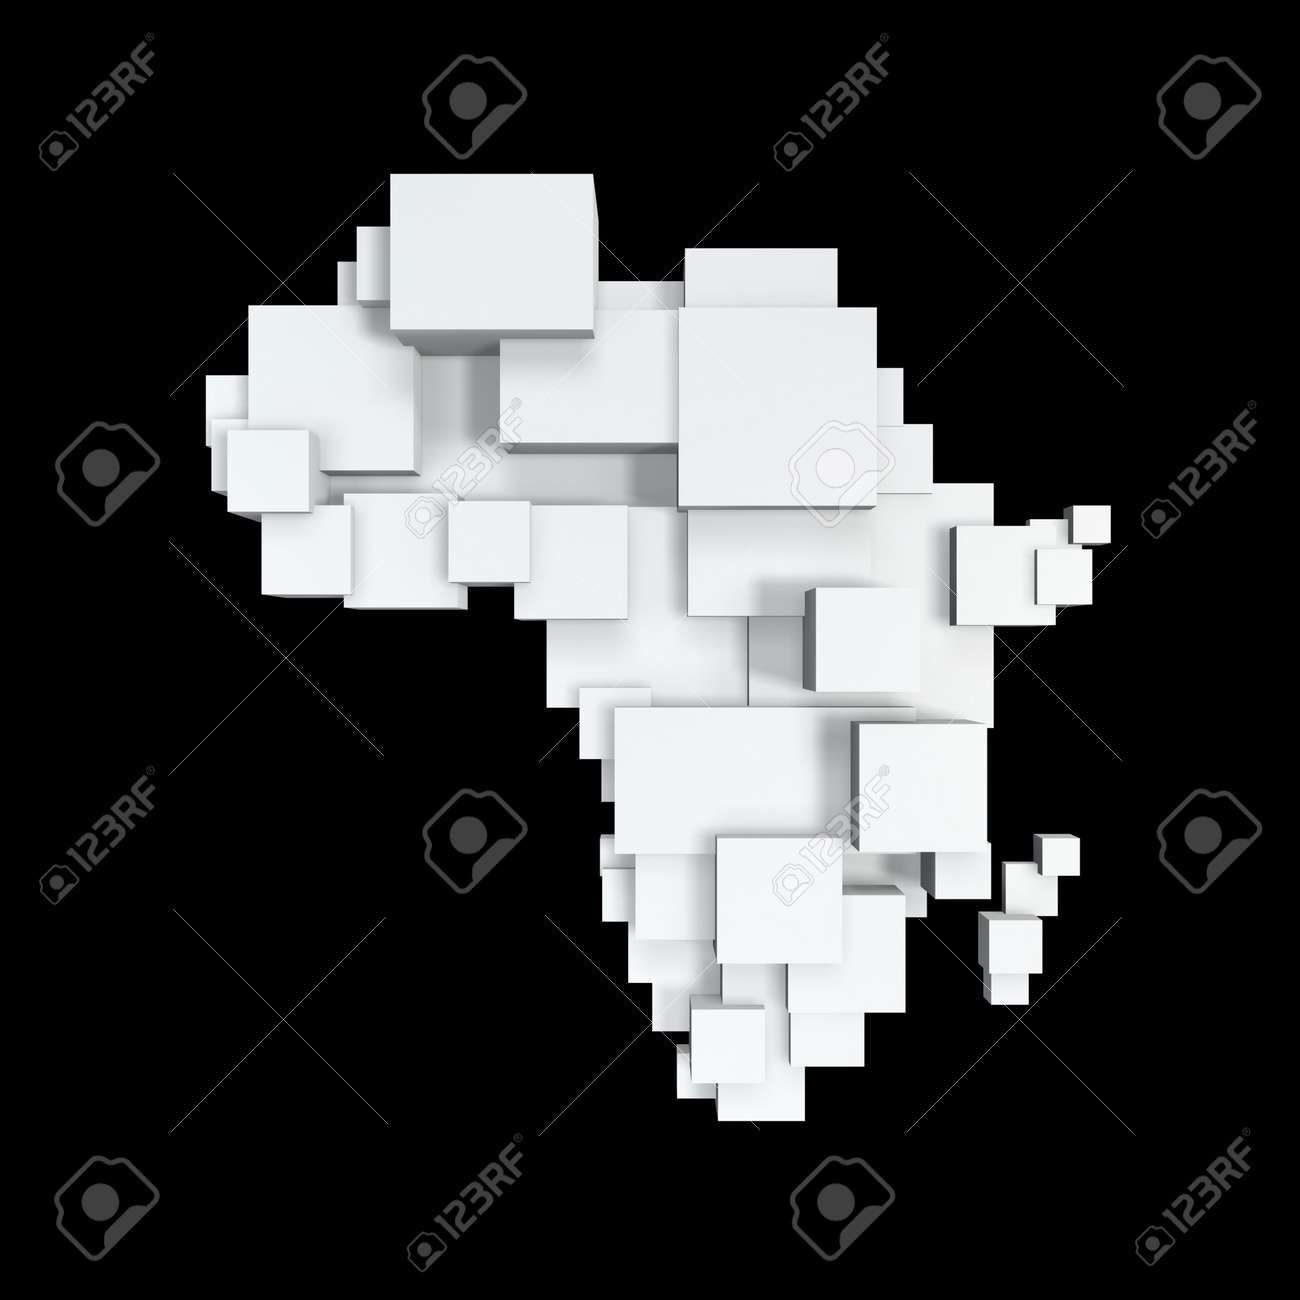 box map of africa isolated on black background Stock Photo - 6994072